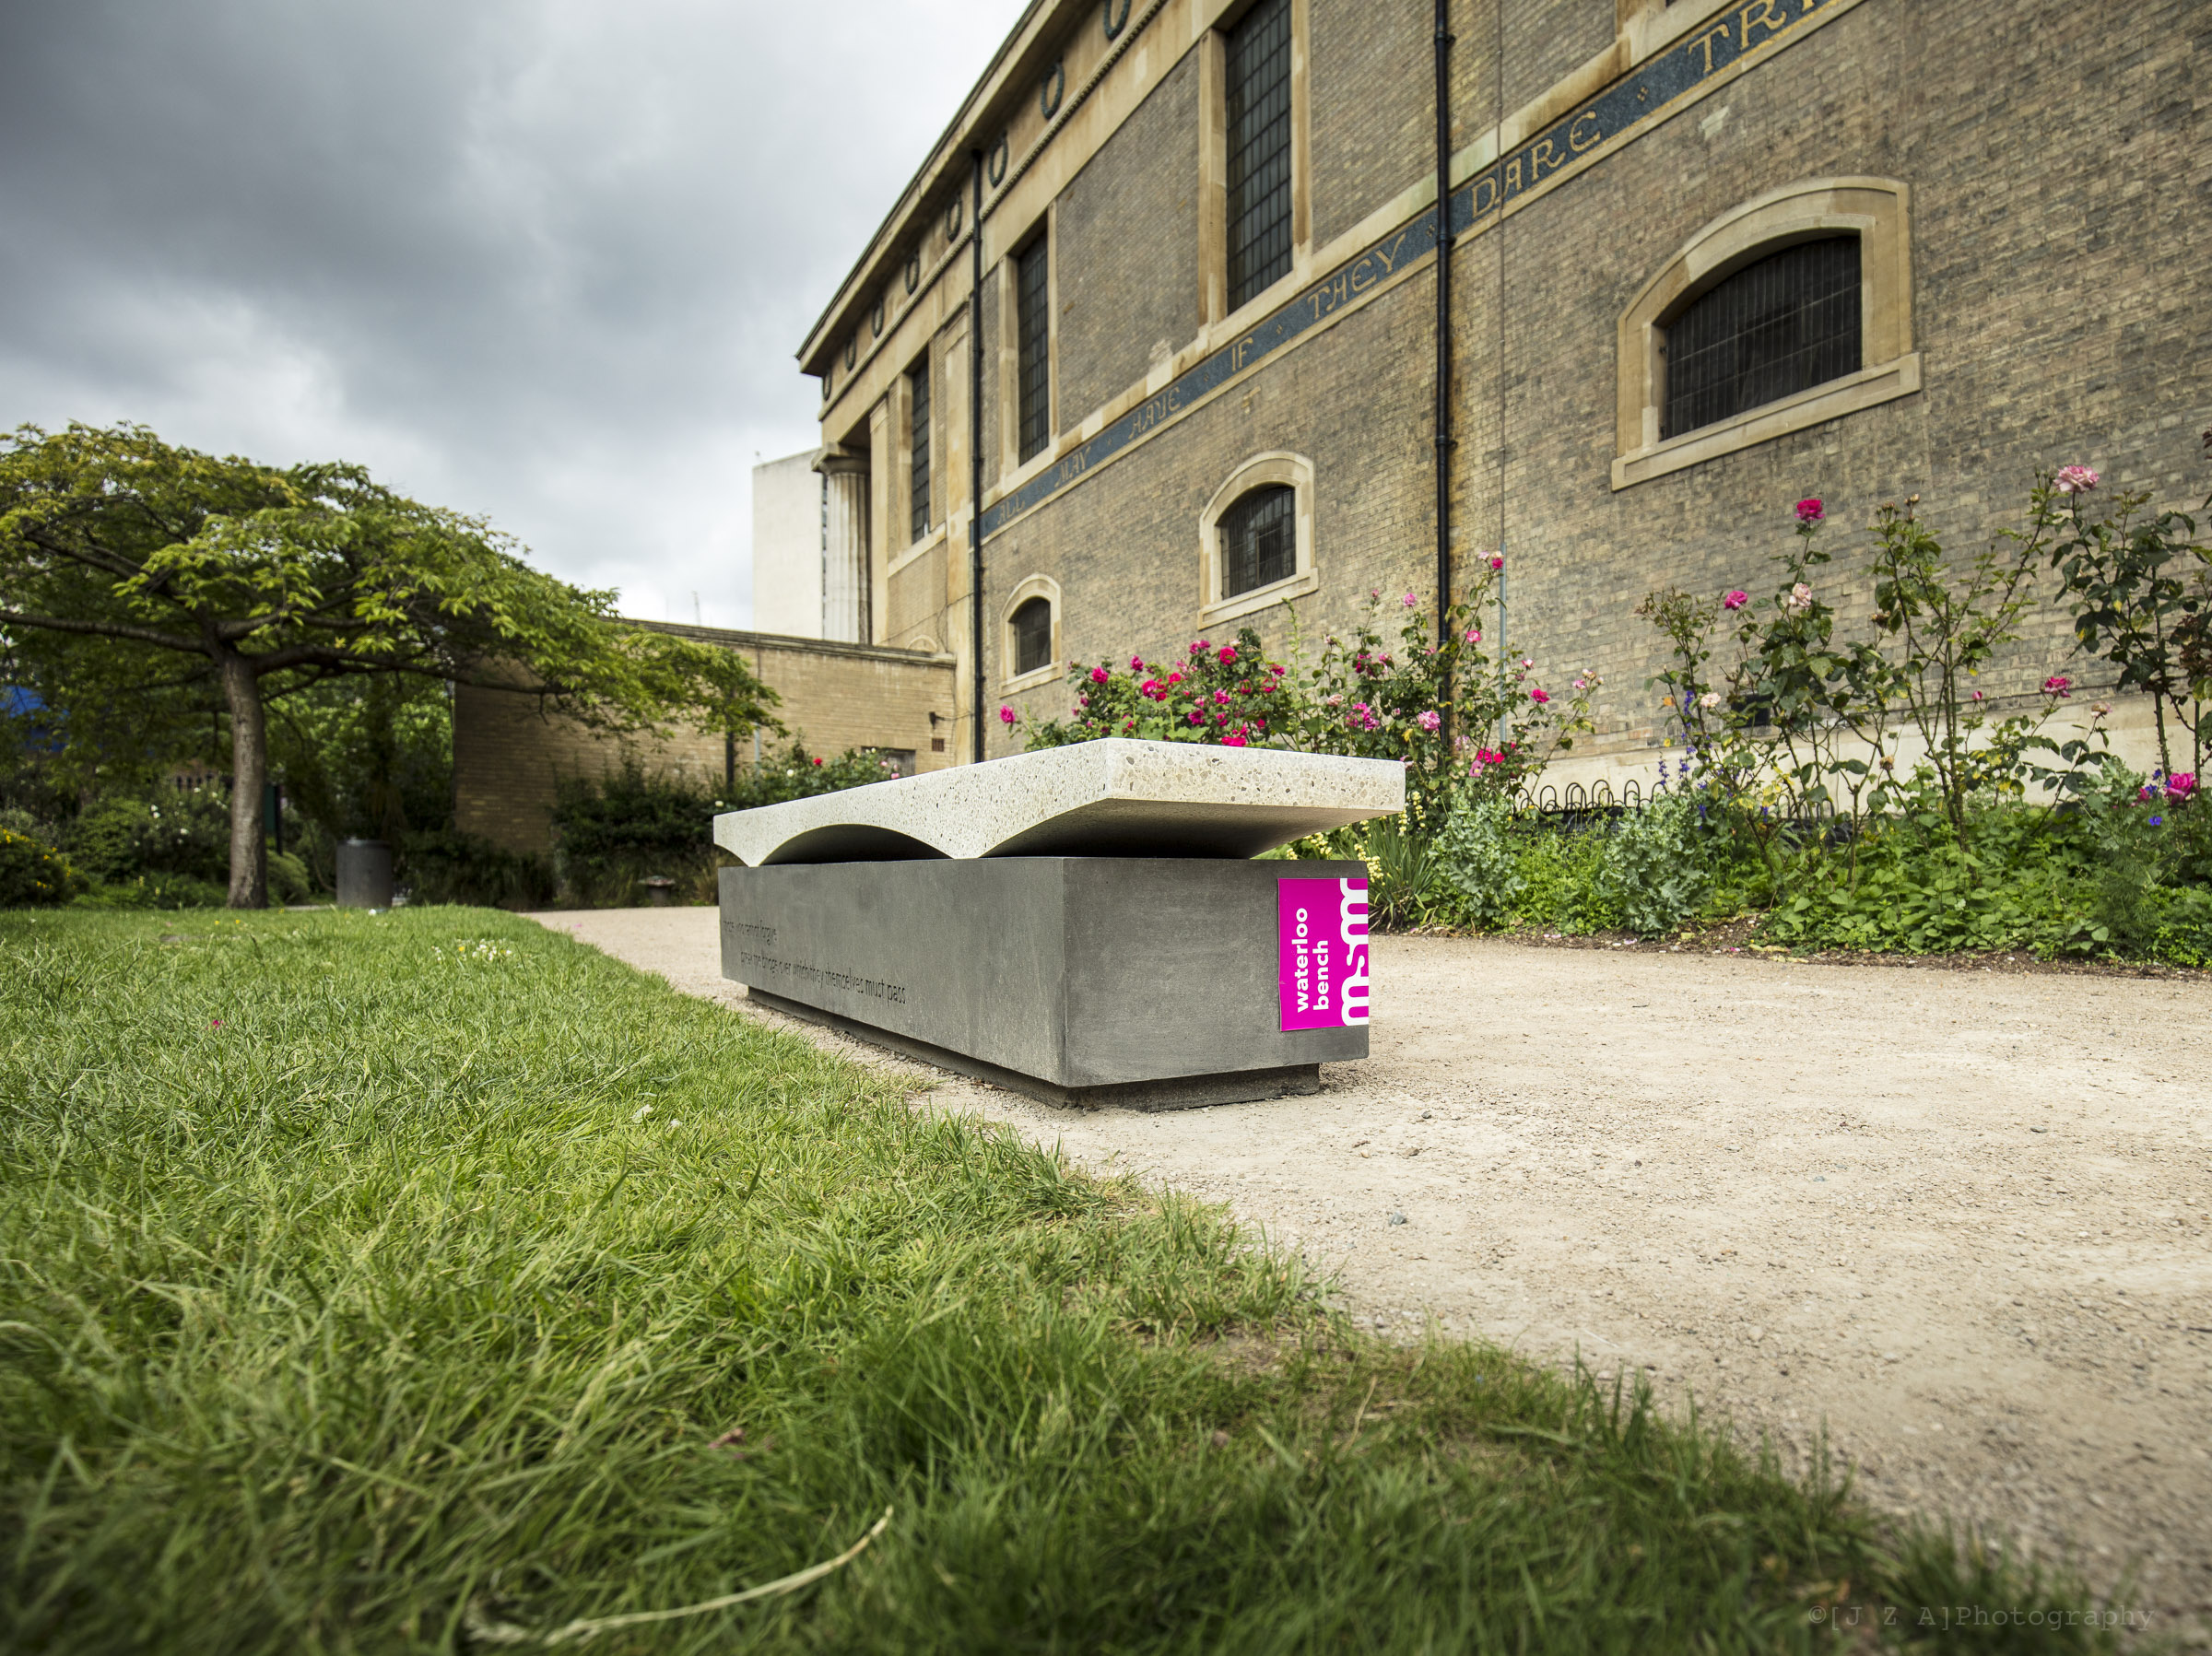 Photo taken by James Attree.